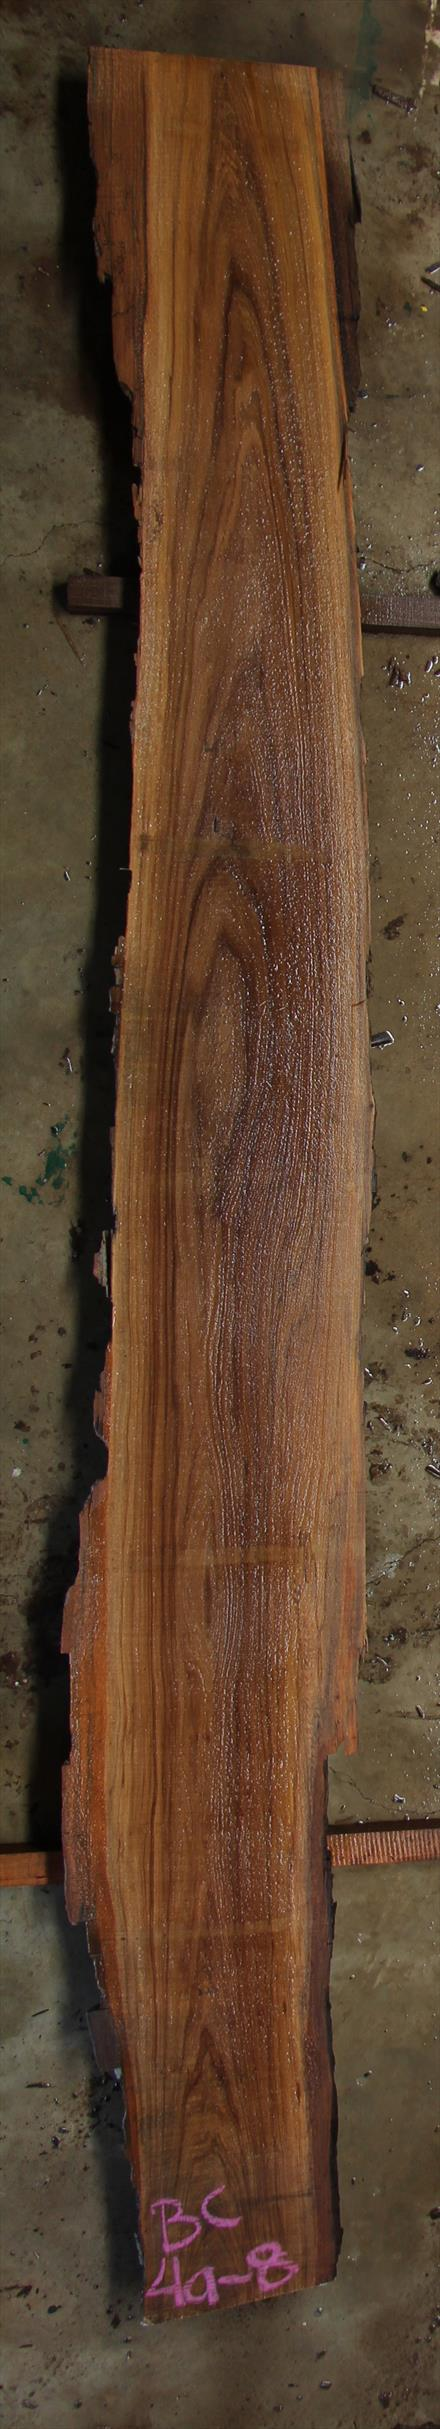 Buried Cypress Slab BC004a-08